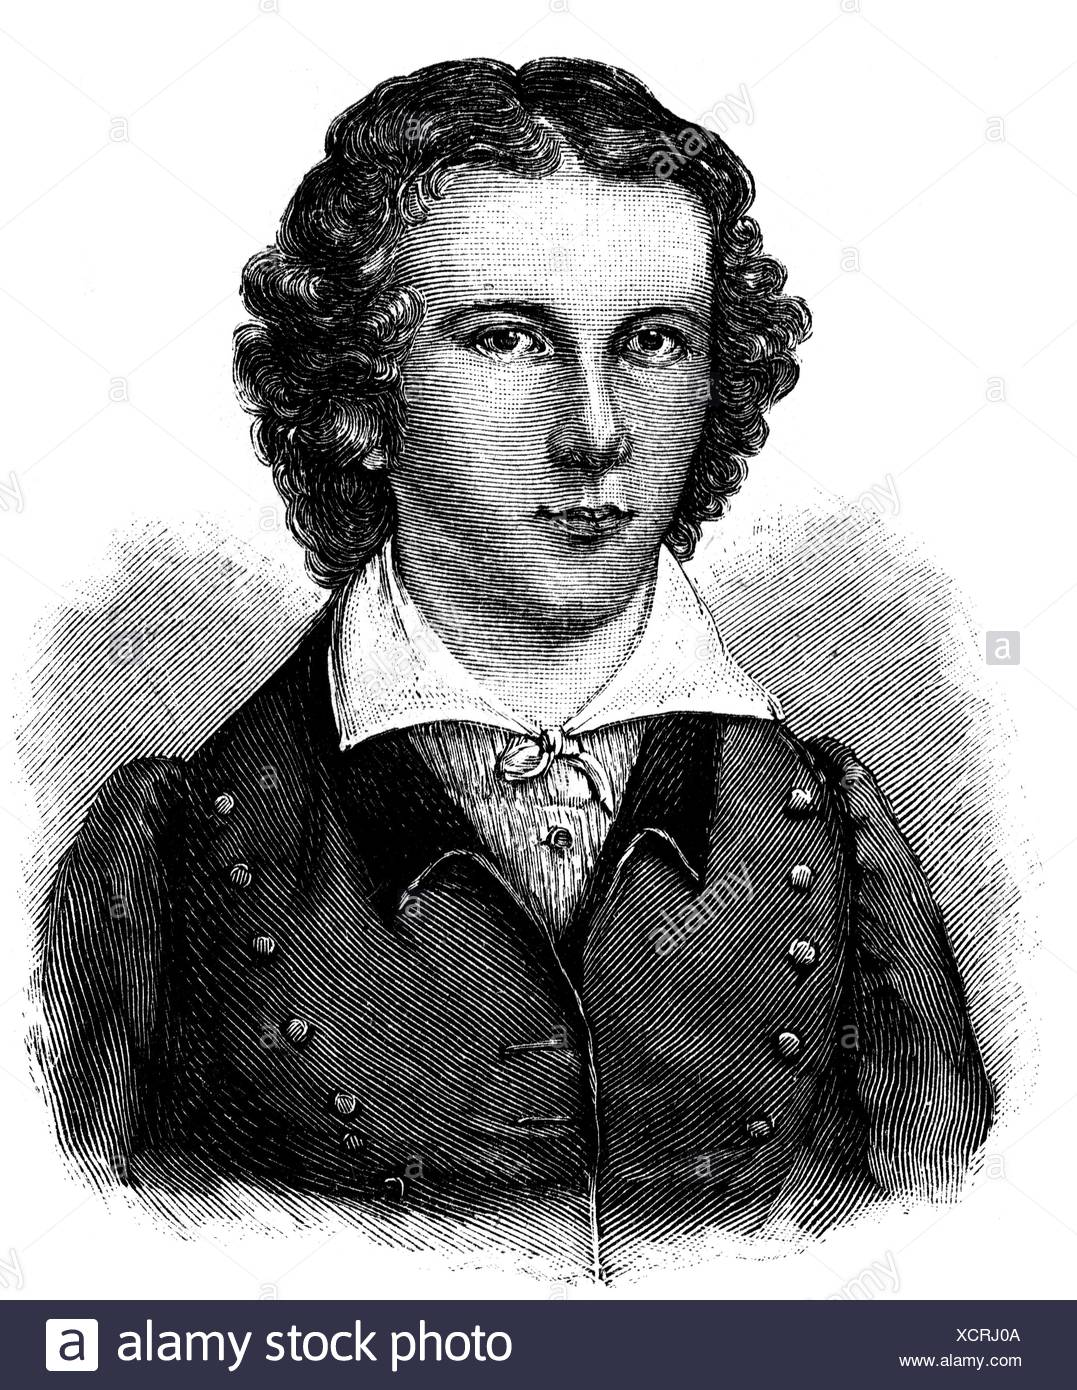 Scheidler, Karl Hermann, 1795 - 1866, German lawyer, philosophy professor, portrait, as student of the fraternity 'Arminia', wood engraving, 19th century, Additional-Rights-Clearances-NA - Stock Image